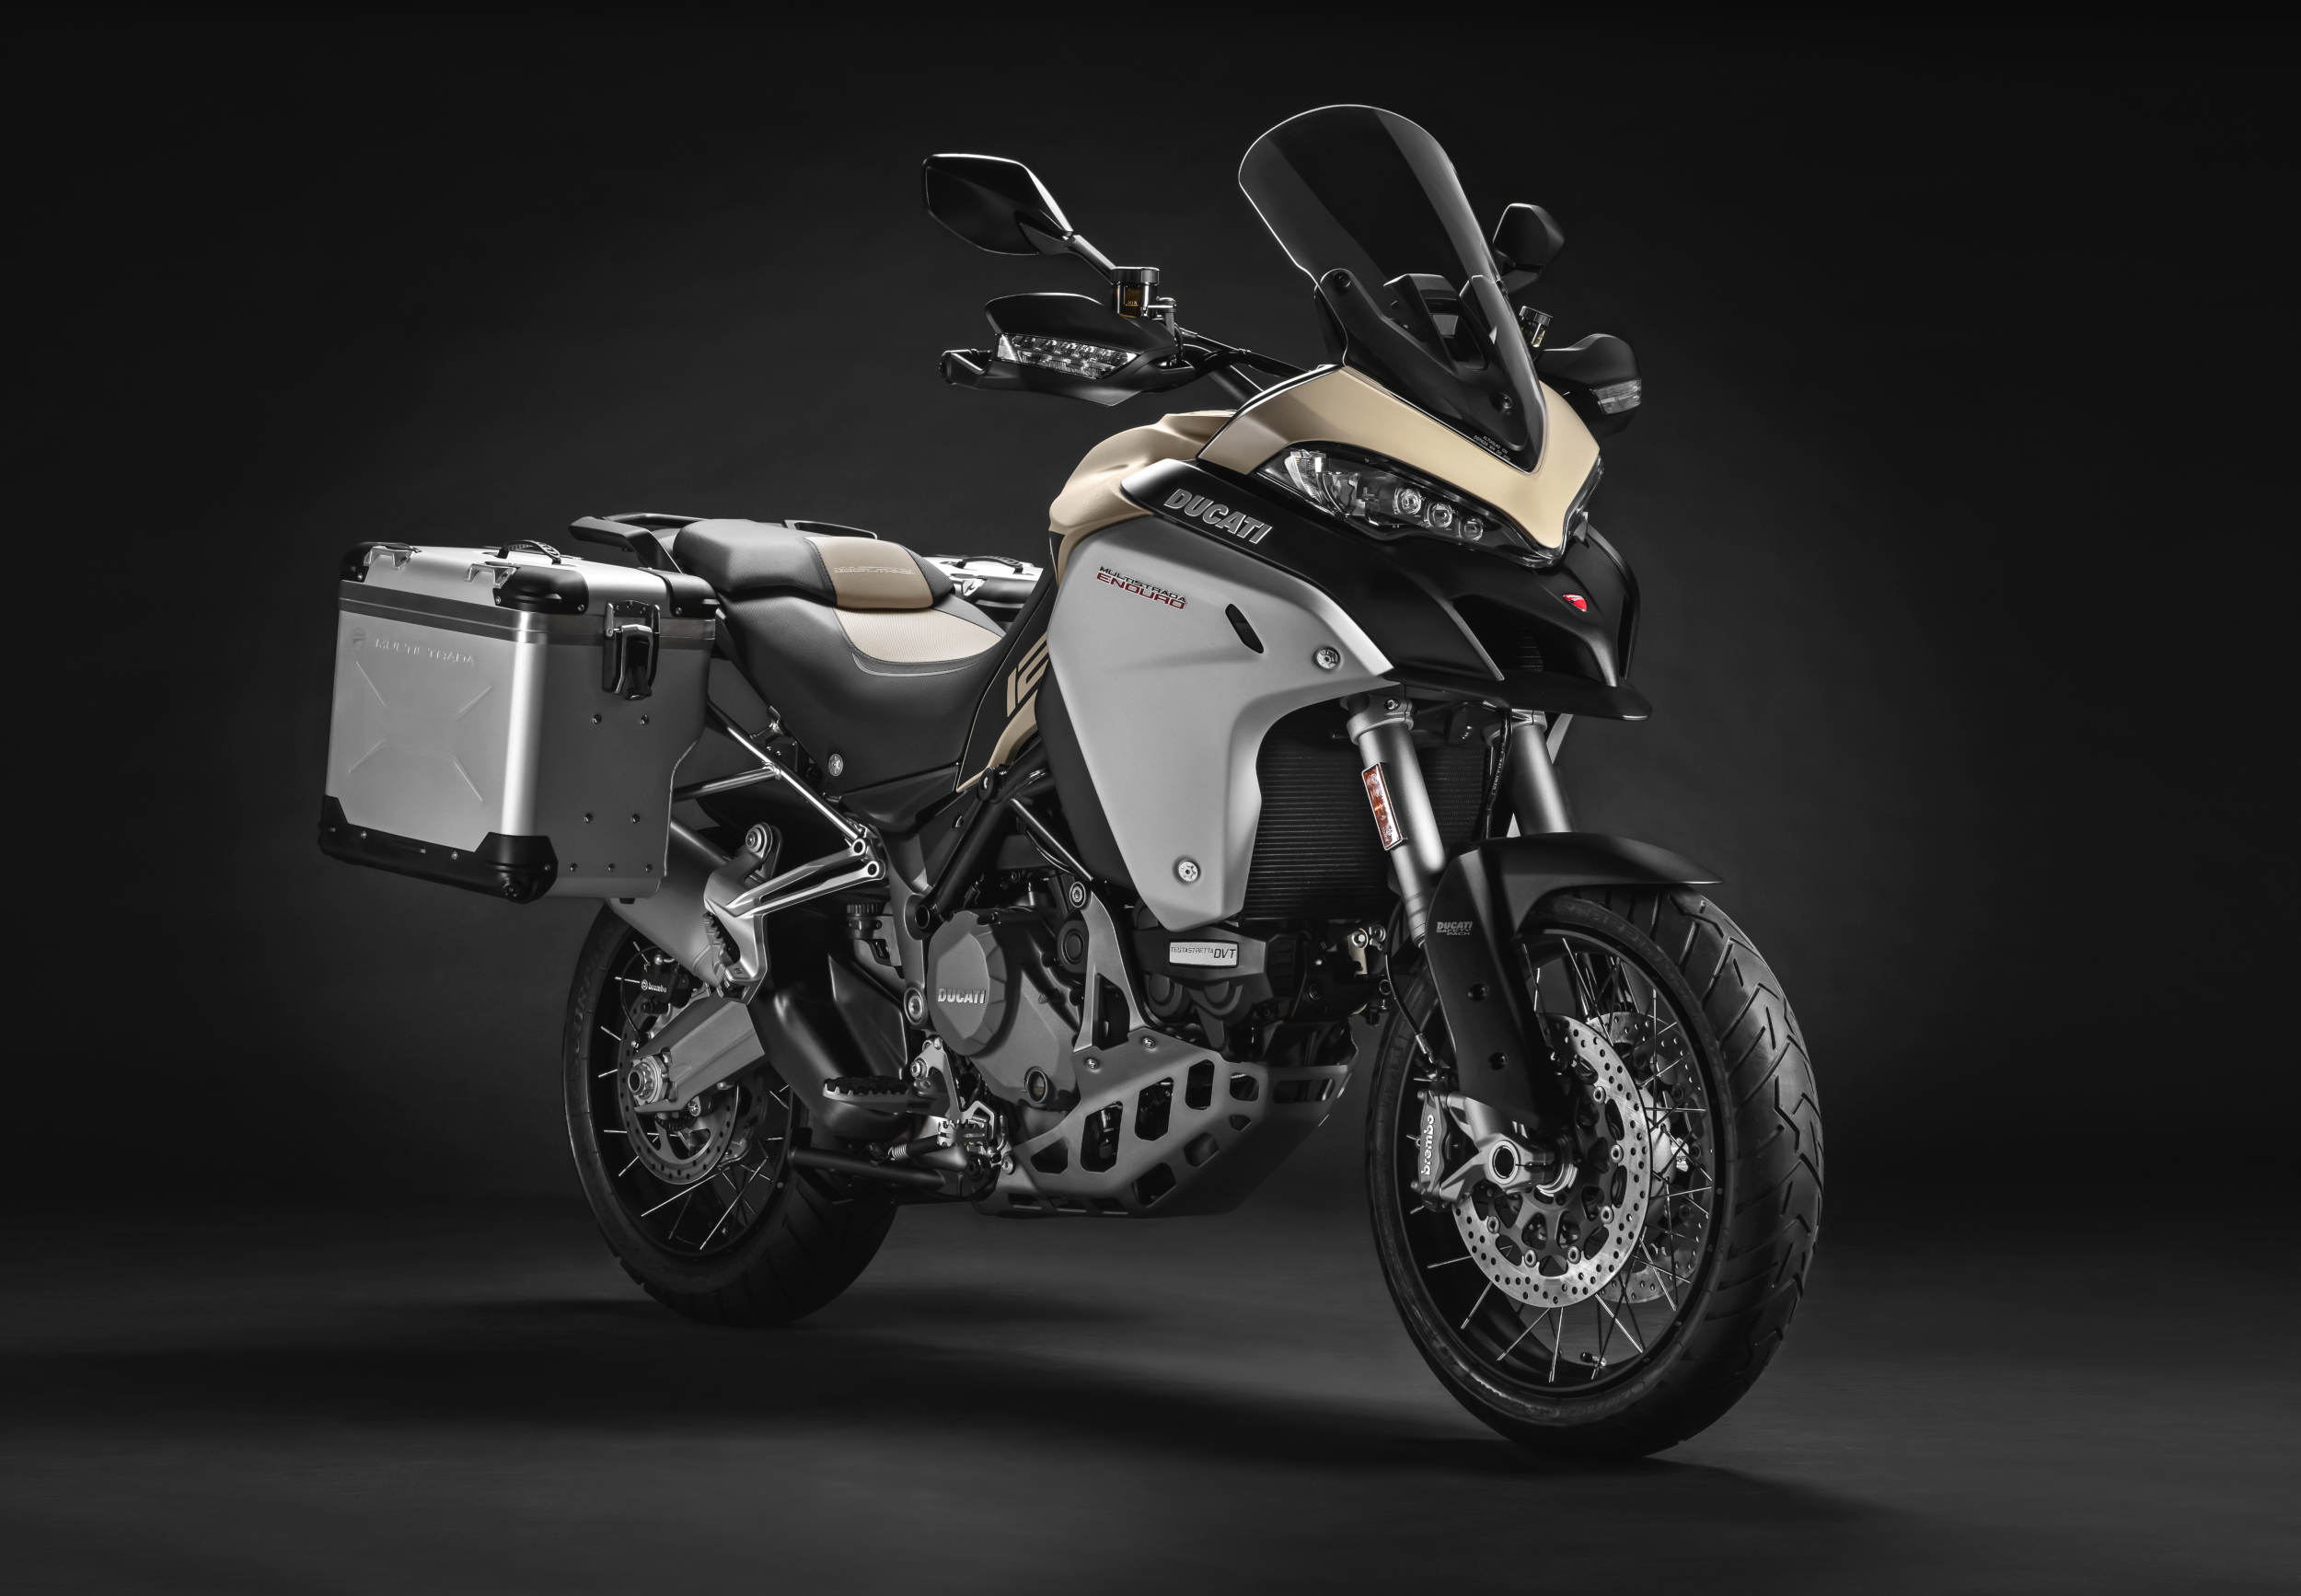 Ducati Debuts New Multistrada 1260 Enduro (with video)